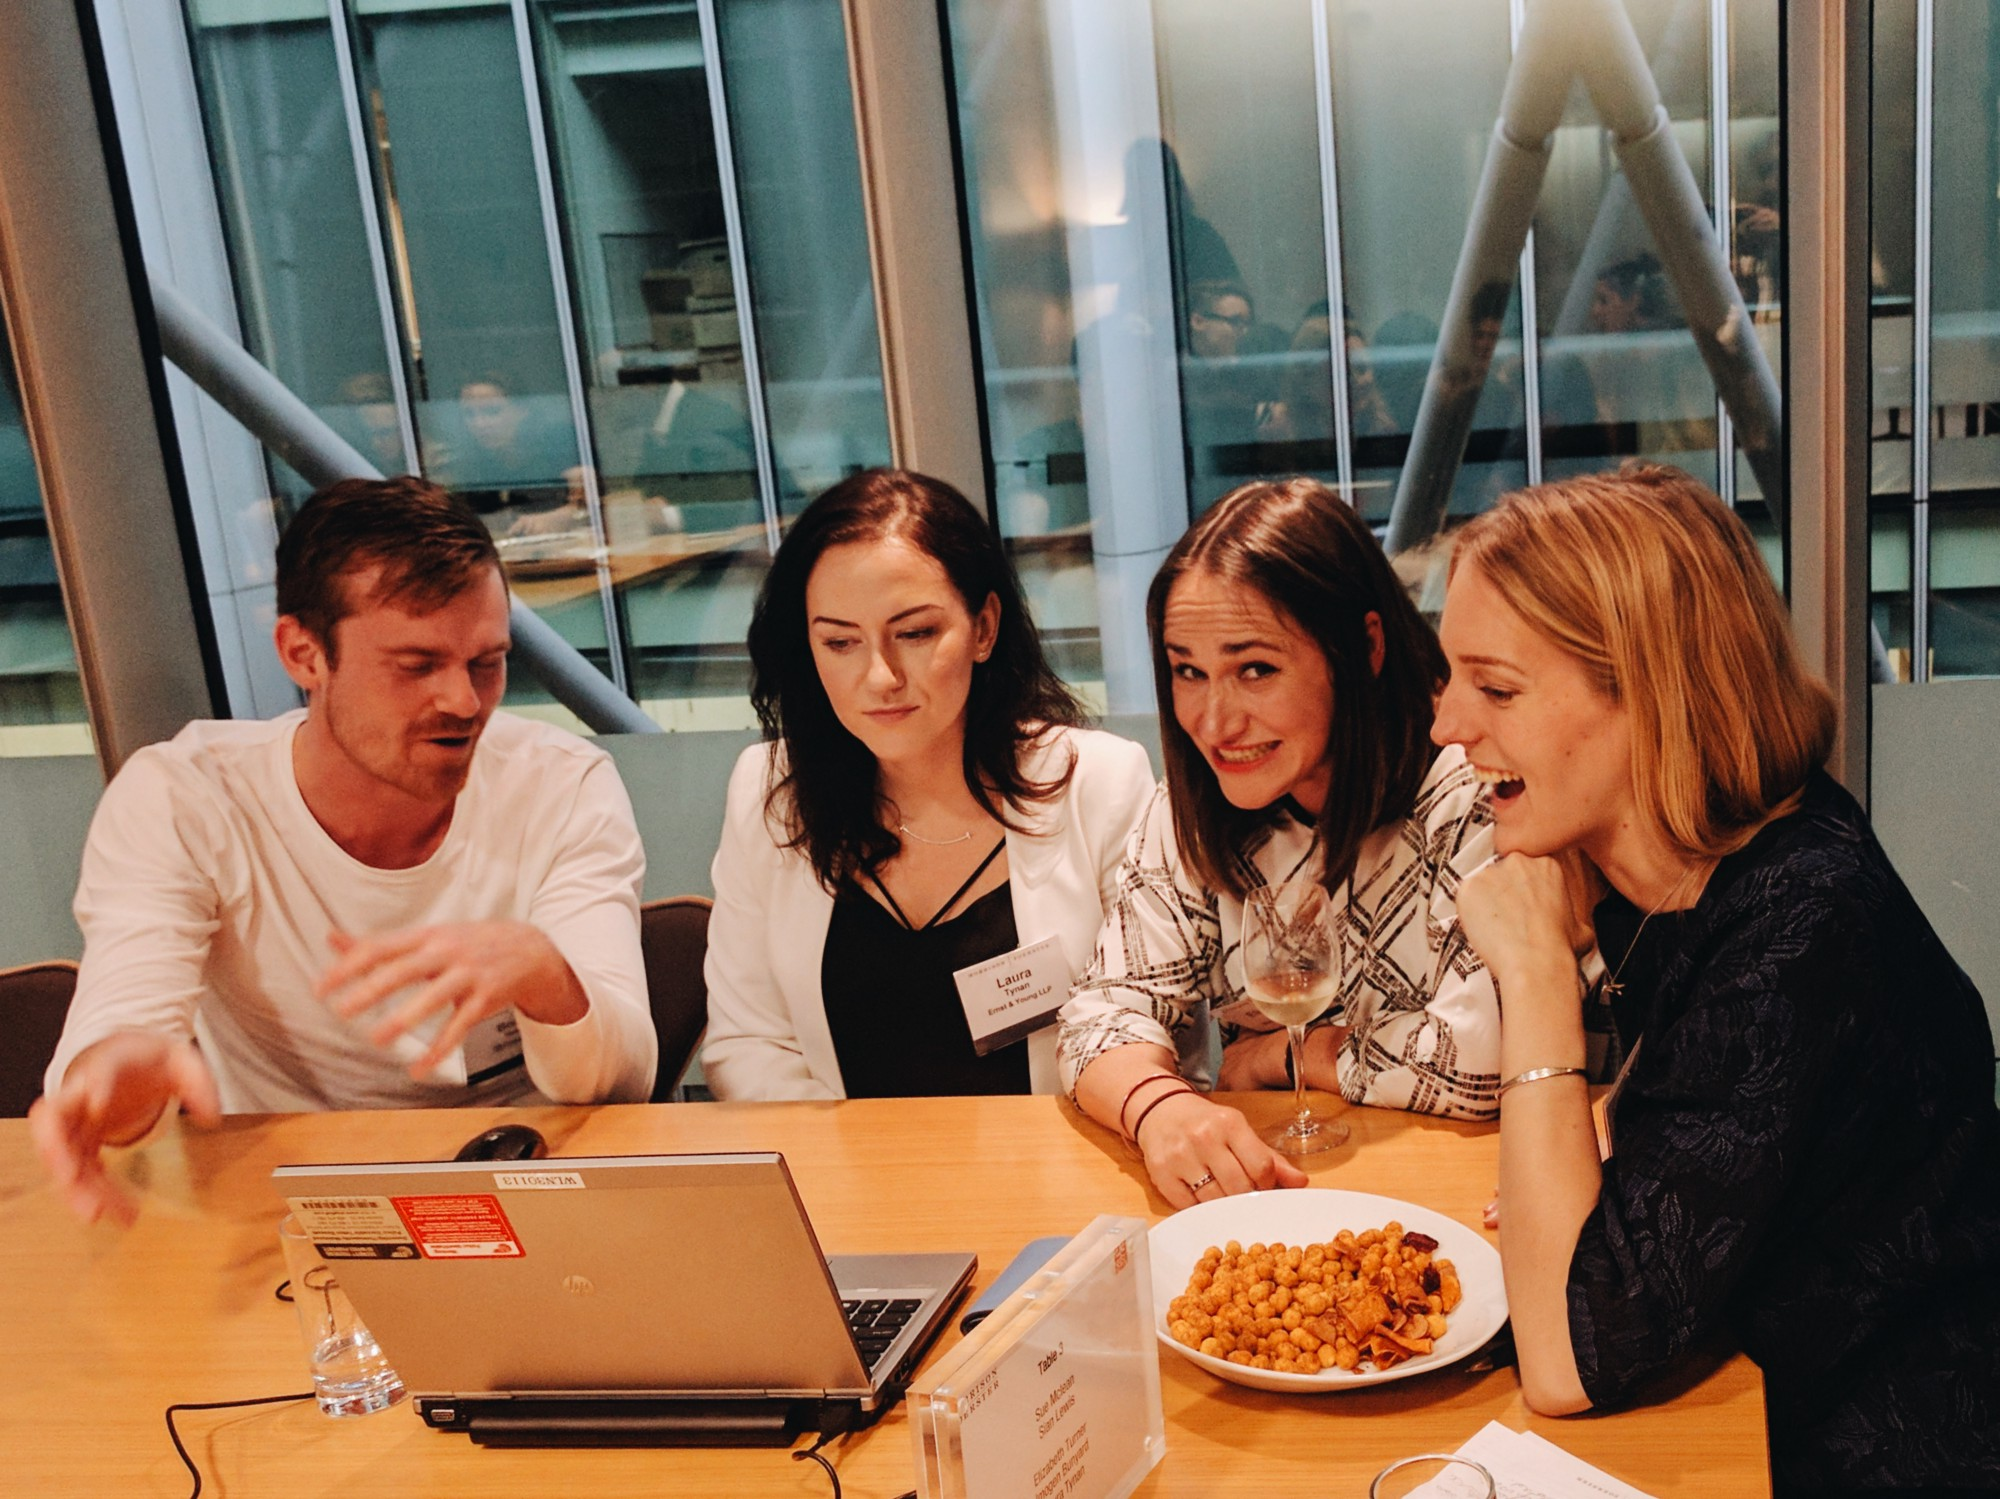 Developer and teacher, Bobby, with three women at a laptop with drinks and peanuts. One woman looks cheekily at the camera.